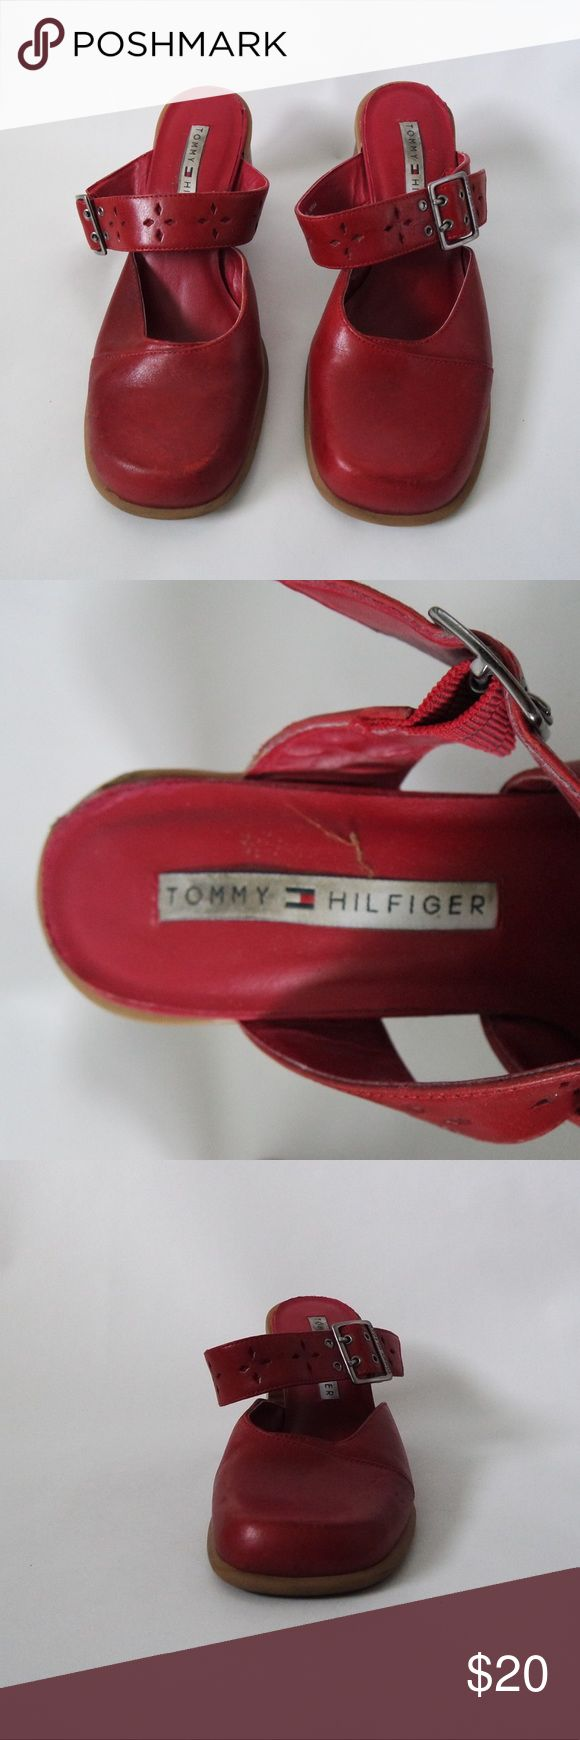 TOMMY HILFIGER red 2 1/2 inch heel Red Tommy Hilfiger 2 1/2 inch heels. Size 7 1/2. Tommy Hilfiger Shoes Heels